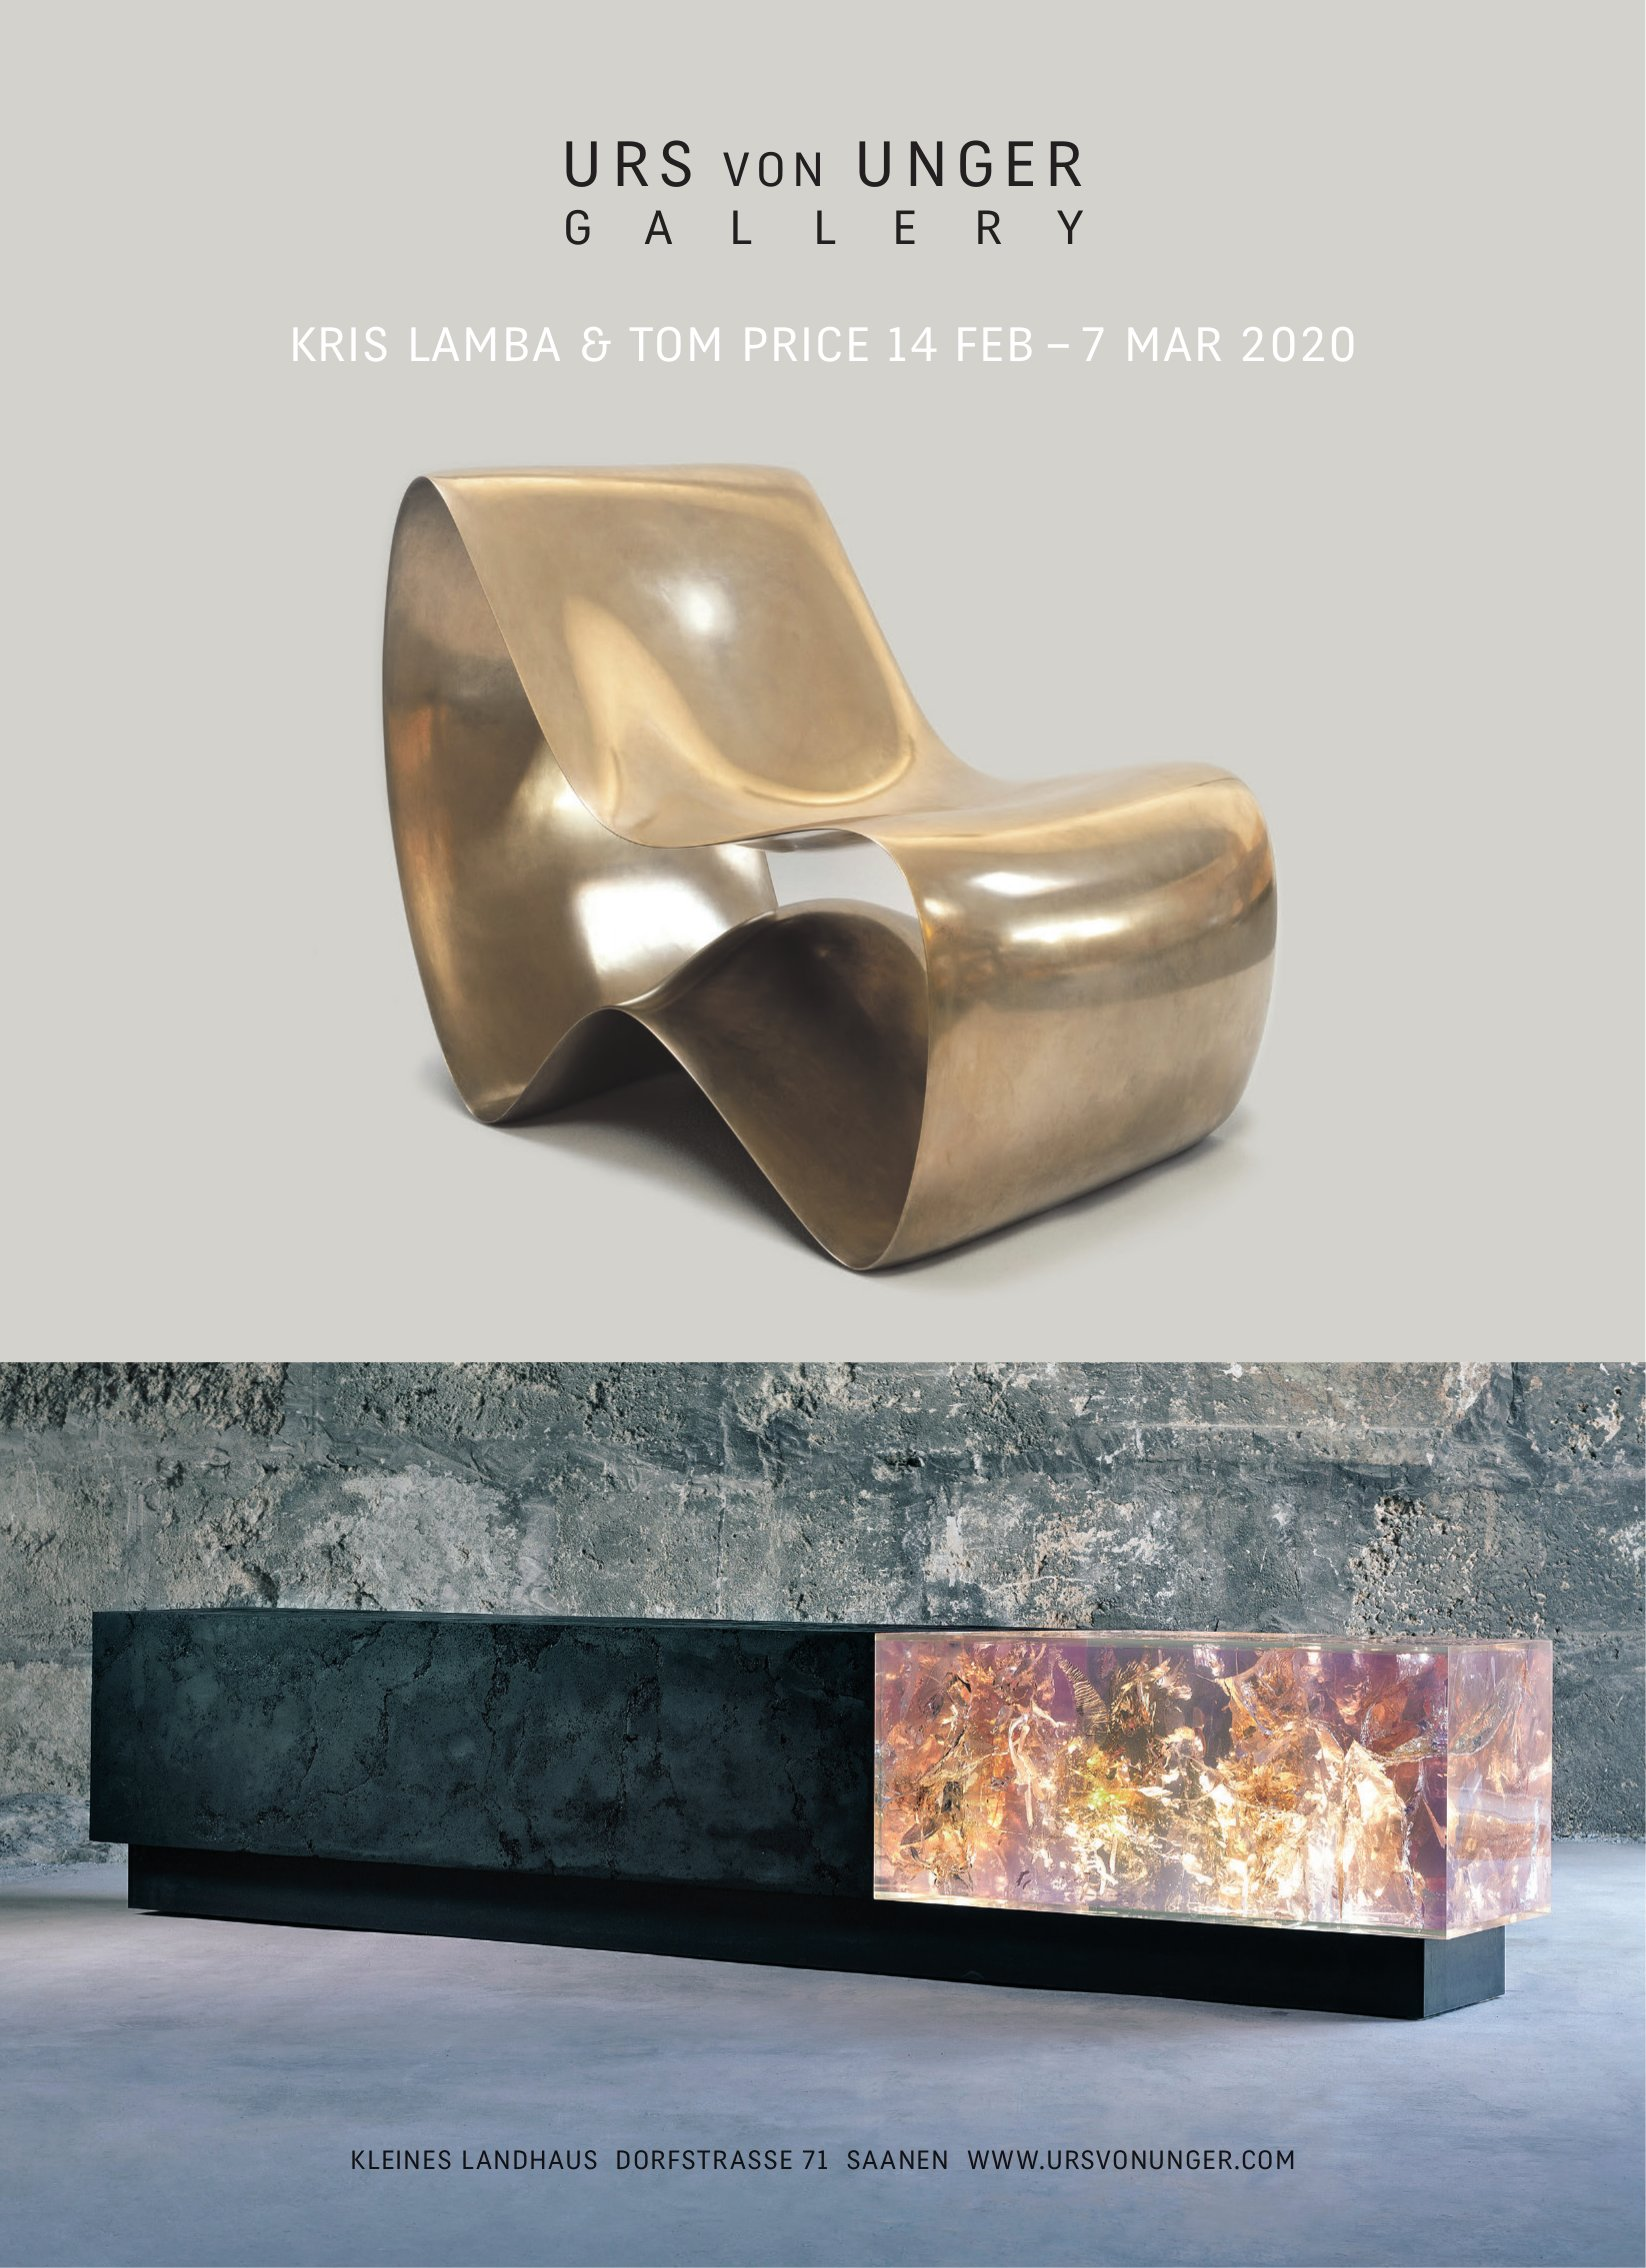 URS VON UNGER GALLERY, SAANEN, KRIS LAMBA & TOM PRICE 14 FEB – 7 MAR 2020